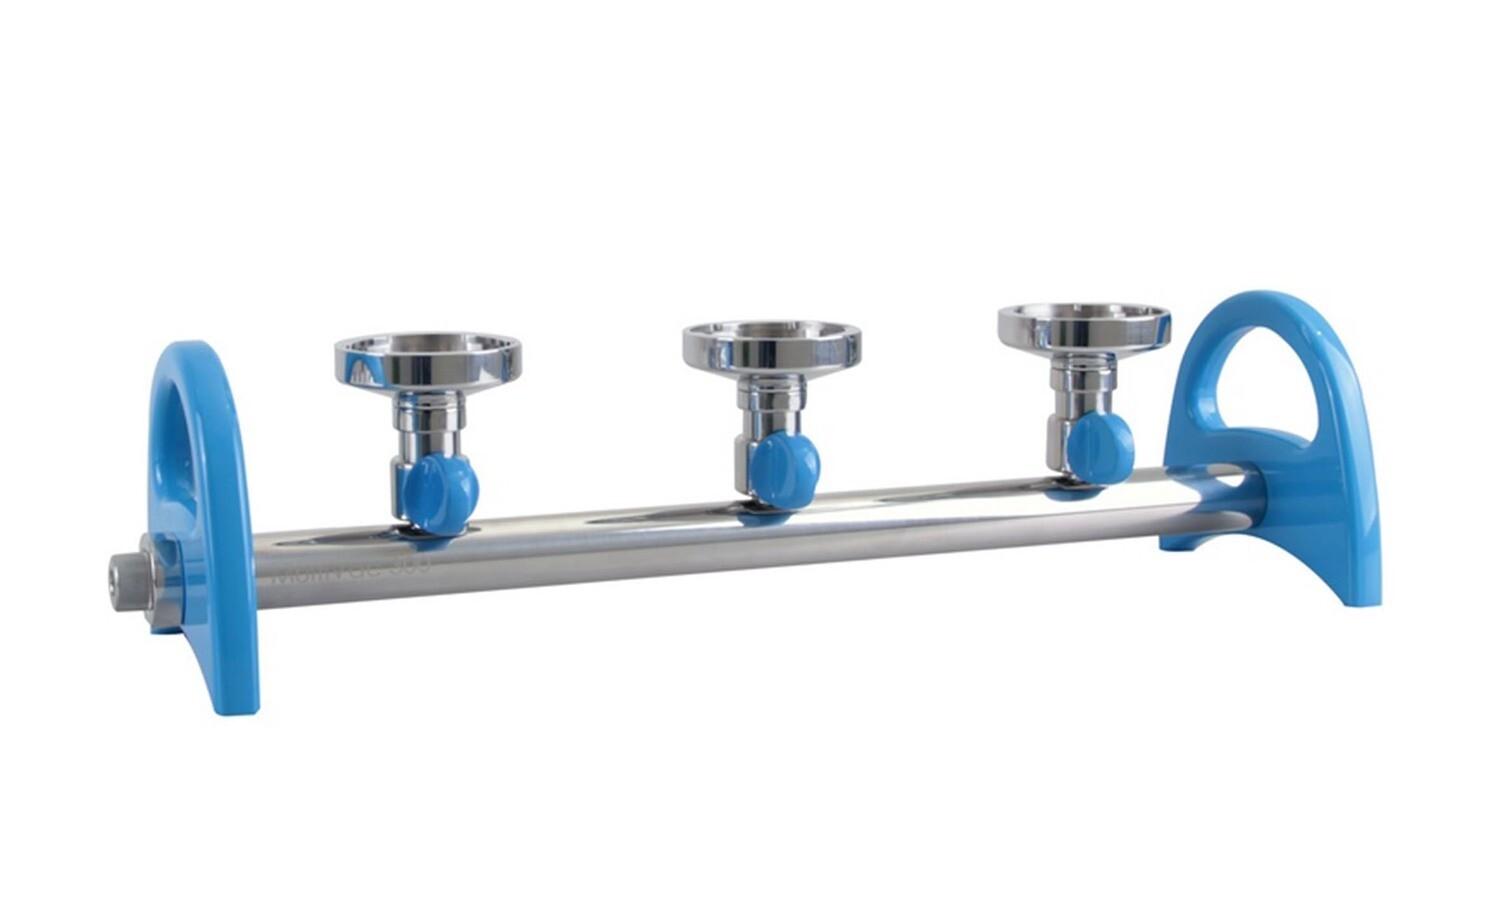 Stainless Steel Spin-Lock Design Multi-Branch Manifold MultiVac 300-MB / MBMultiVac 600-MB